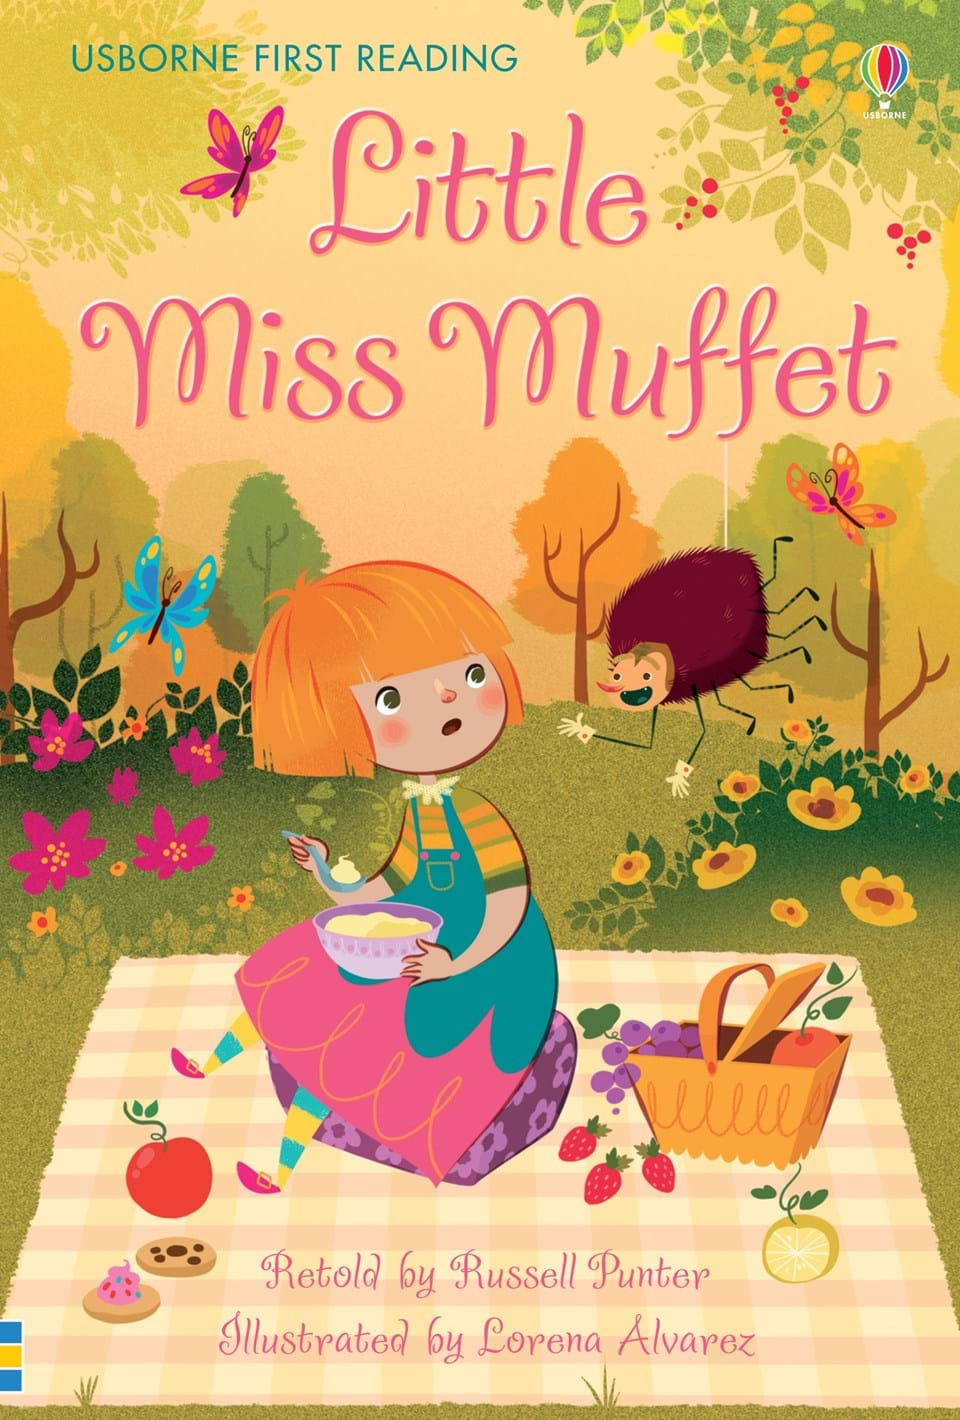 Usborne First Reading: Little Miss Muffet (Level 2)